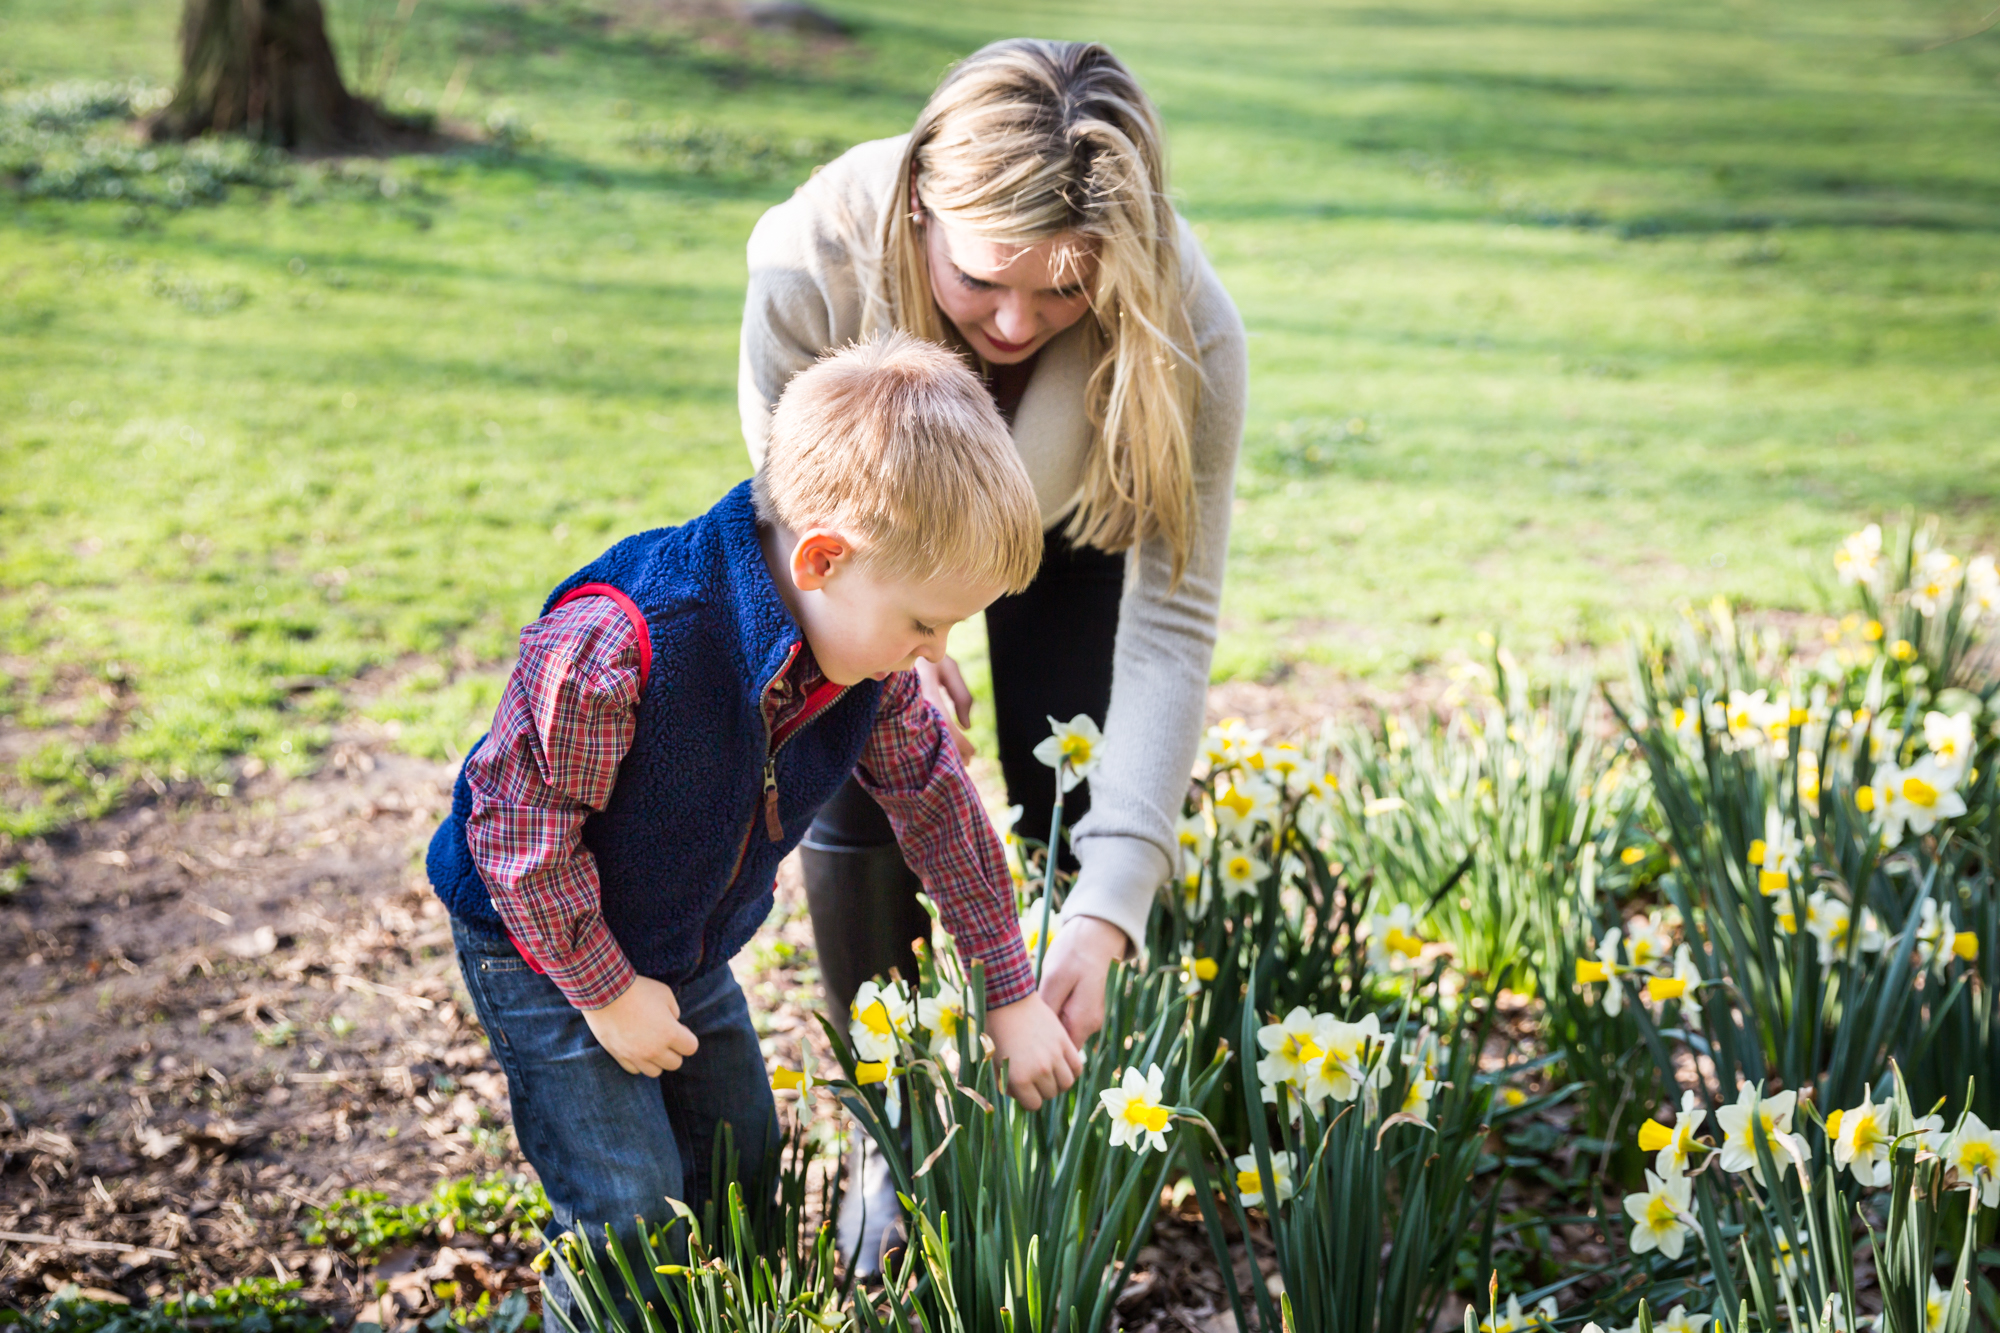 Mother and child picking daffodils for an article on the best family portrait poses